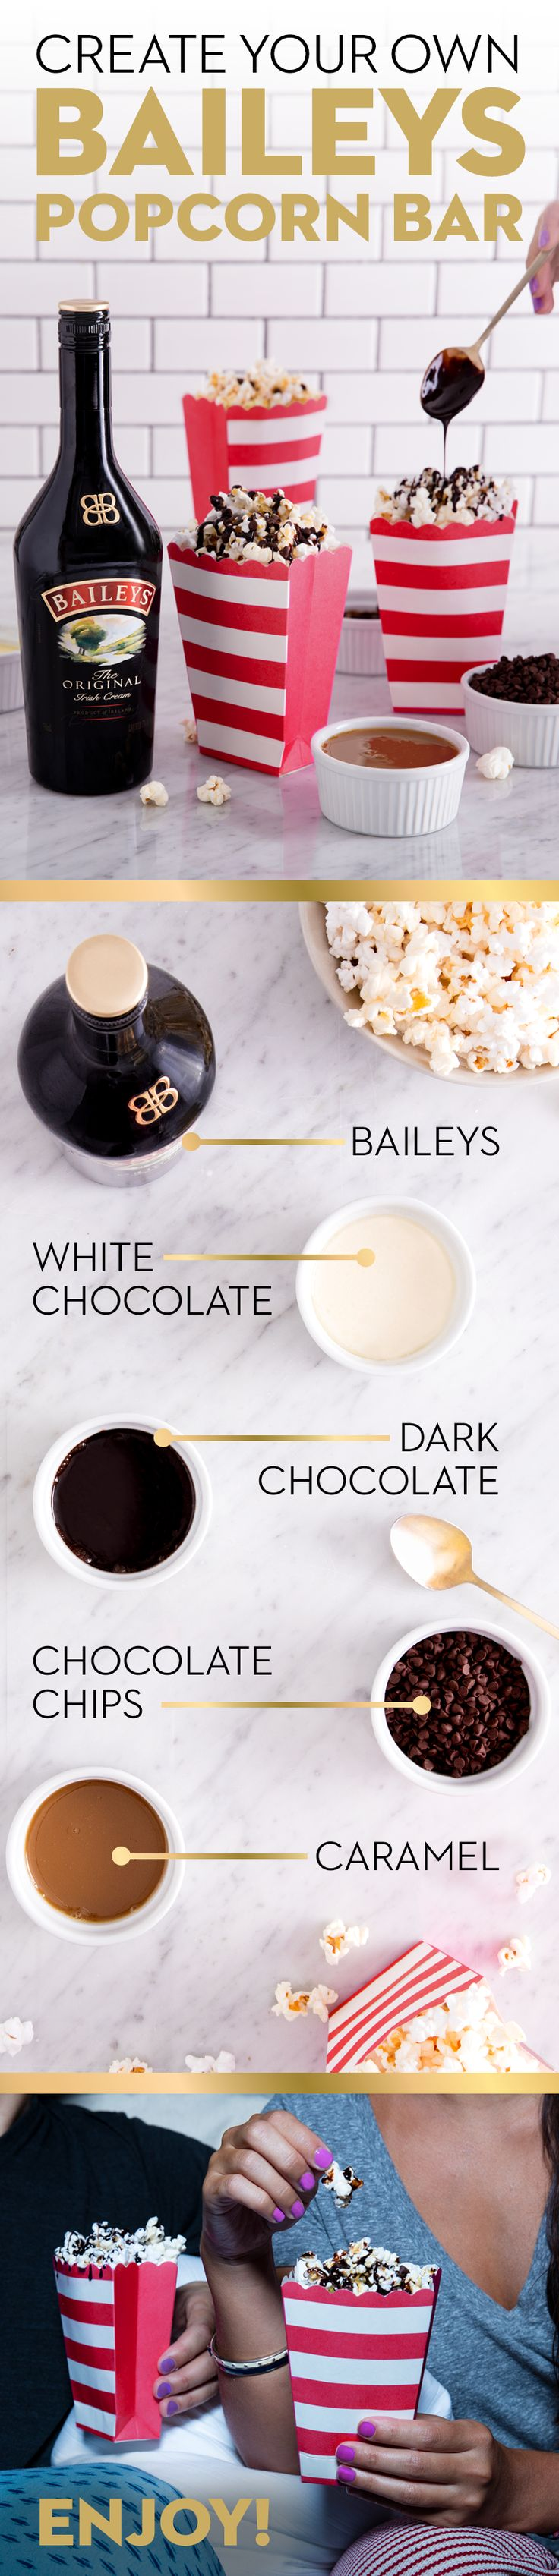 Movies and popcorn are a perfect pair. But we have an even better idea: holiday movies and Baileys flavored popcorn! Turn a standard party snack into a delicious guilt-free treat for a night in with Baileys, chocolate, white chocolate, peanut butter, caramel, cinnamon and more! The weather outside may be frightful, but this recipe is always delightful—perfect for cozying up and catching your favorite holiday flick. Just add Baileys to the sauces and mix well. Then drizzle over popcorn and…